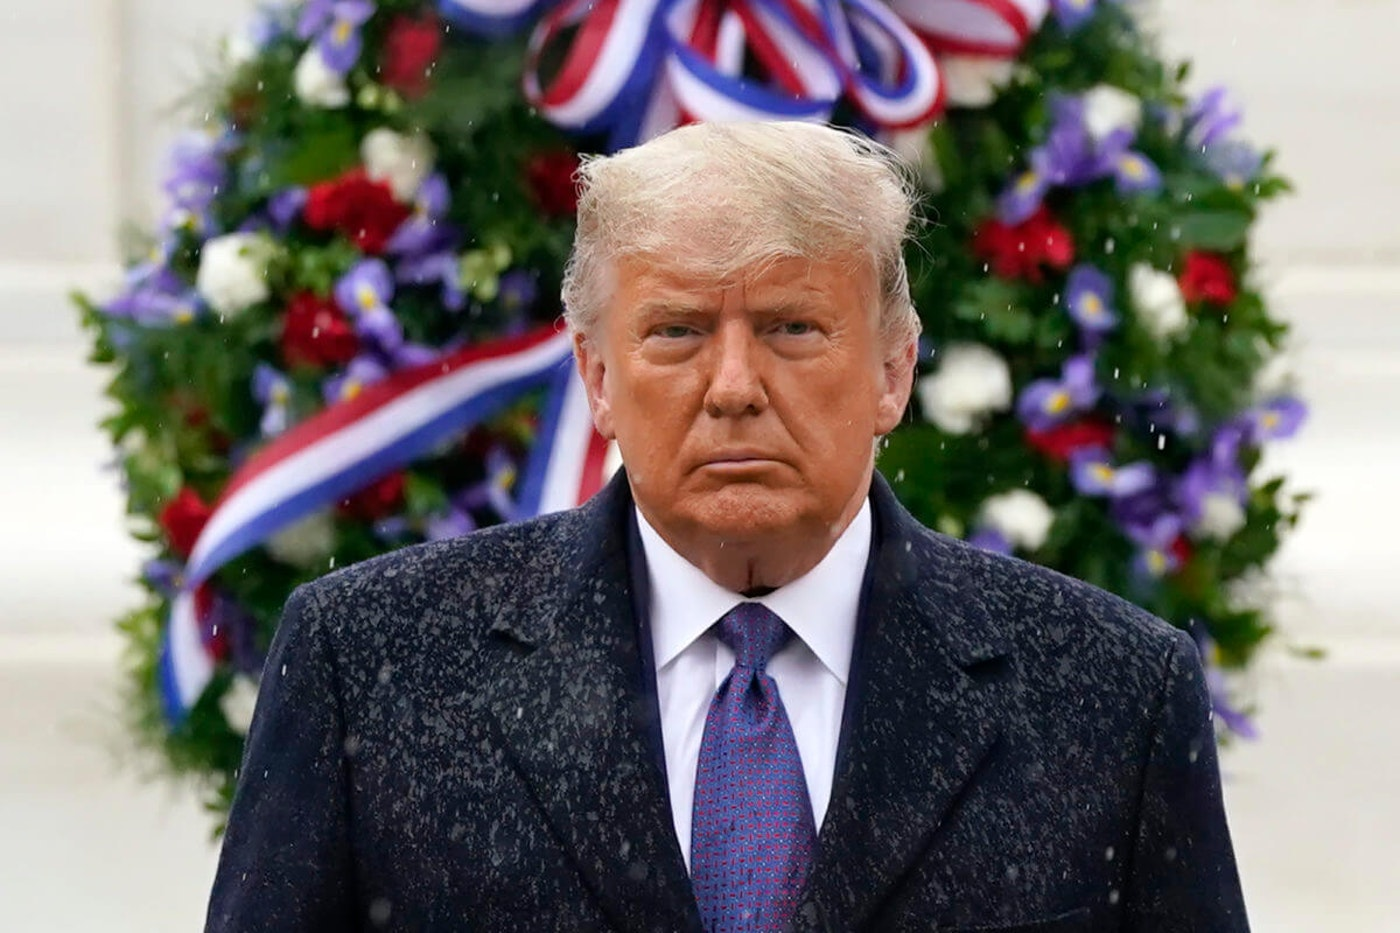 President Donald Trump participates in a Veterans Day wreath laying ceremony at the Tomb of the Unknown Soldier at Arlington National Cemetery in Arlington, Va., Wednesday, Nov. 11, 2020. Most credible news outlets have called the election for Democrat Joe Biden, but Trump has refused to concede. (AP Photo/Patrick Semansky)